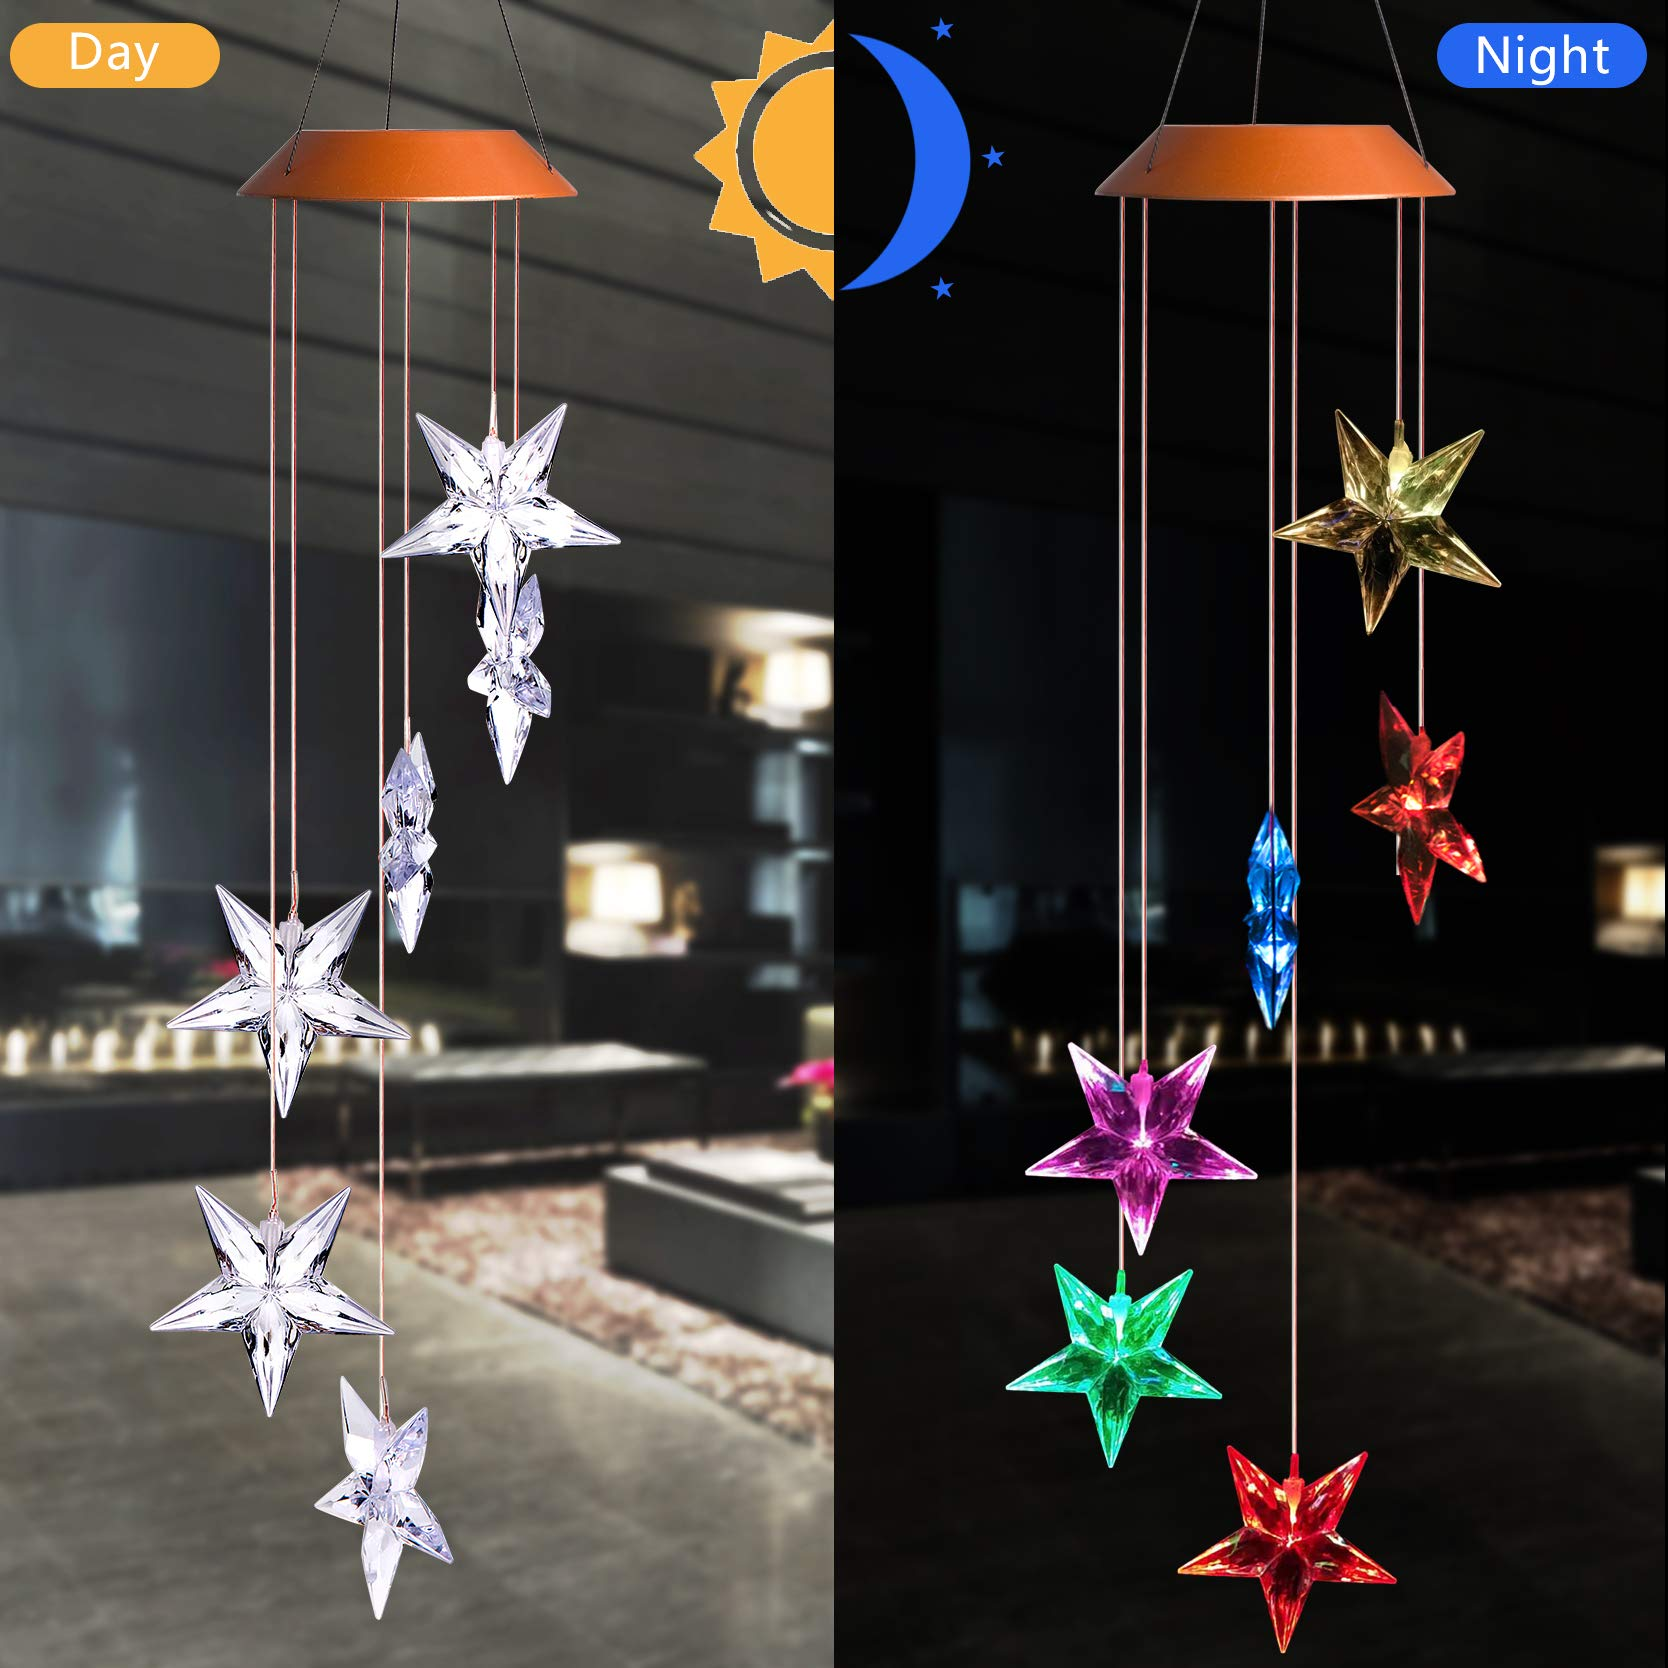 CXFF LED Solar Stars Wind Chimes Outdoor - Waterproof Solar Powered LED Changing Light Color Six Stars Mobile Romantic Wind-Bell Home, Party, Festival Decor, Night Garden Decoration